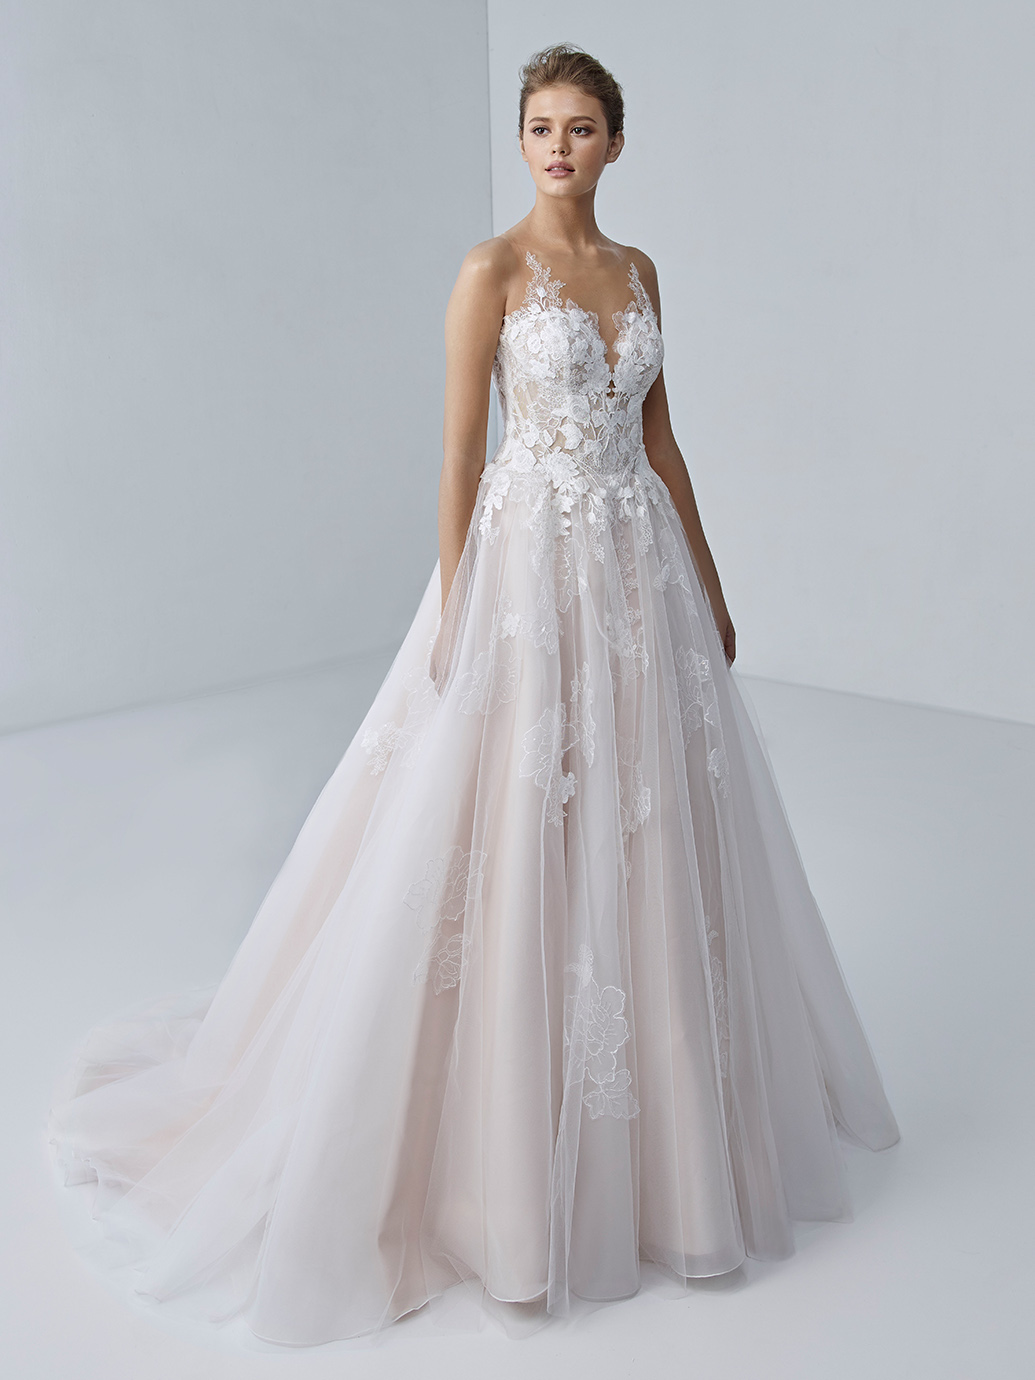 étoile-by-enzoani-2021-Dress-Finder-Fleur